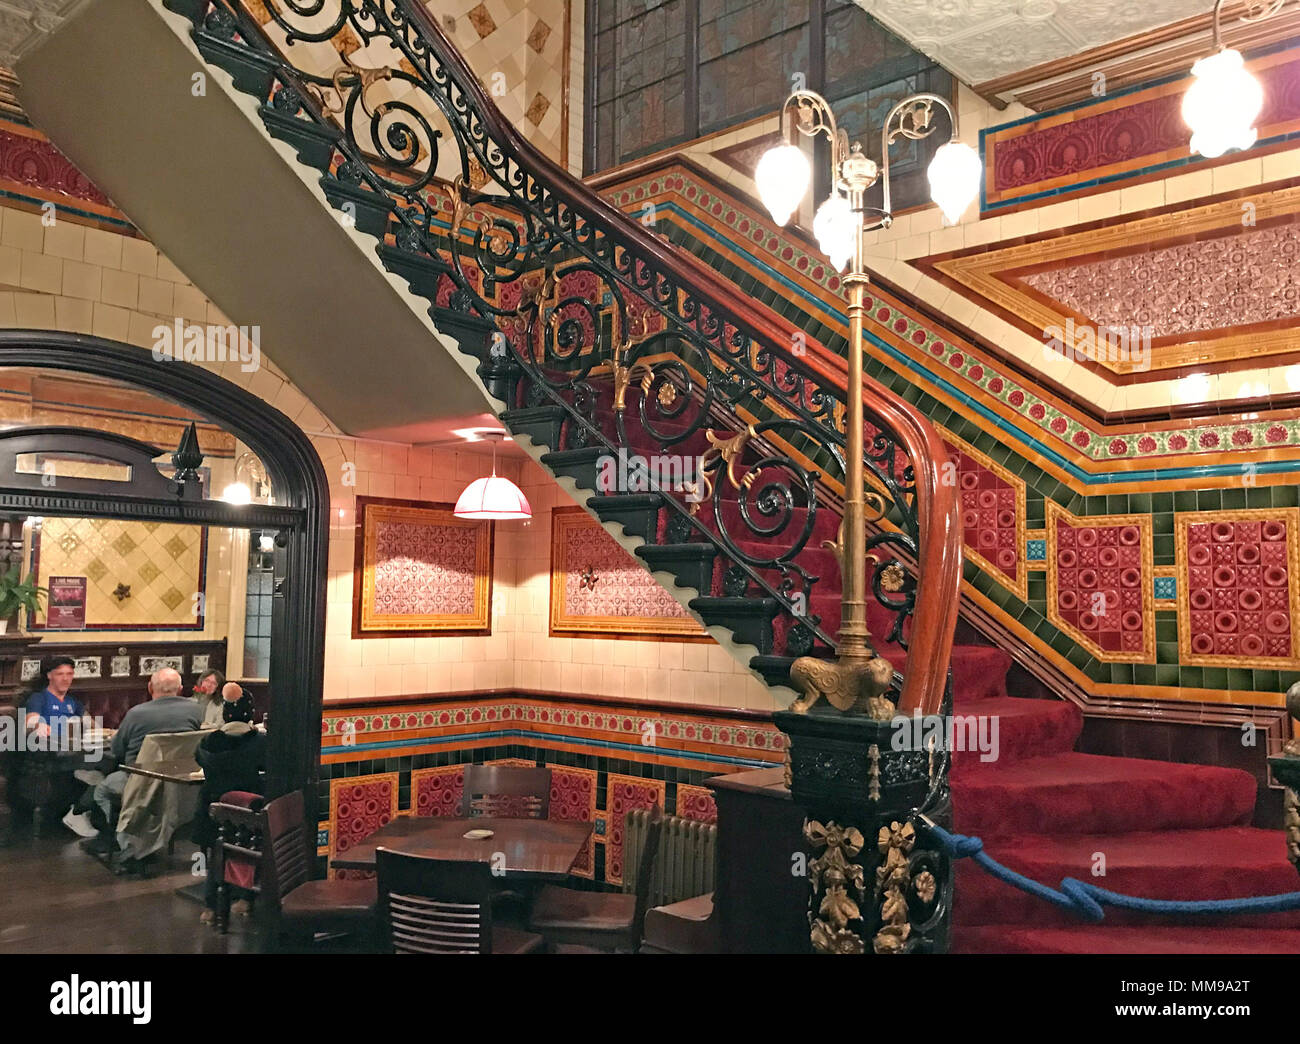 Victorian tile staircase at the Bartons Arms, Aston, Birmingham, B6 4UP - Stock Image